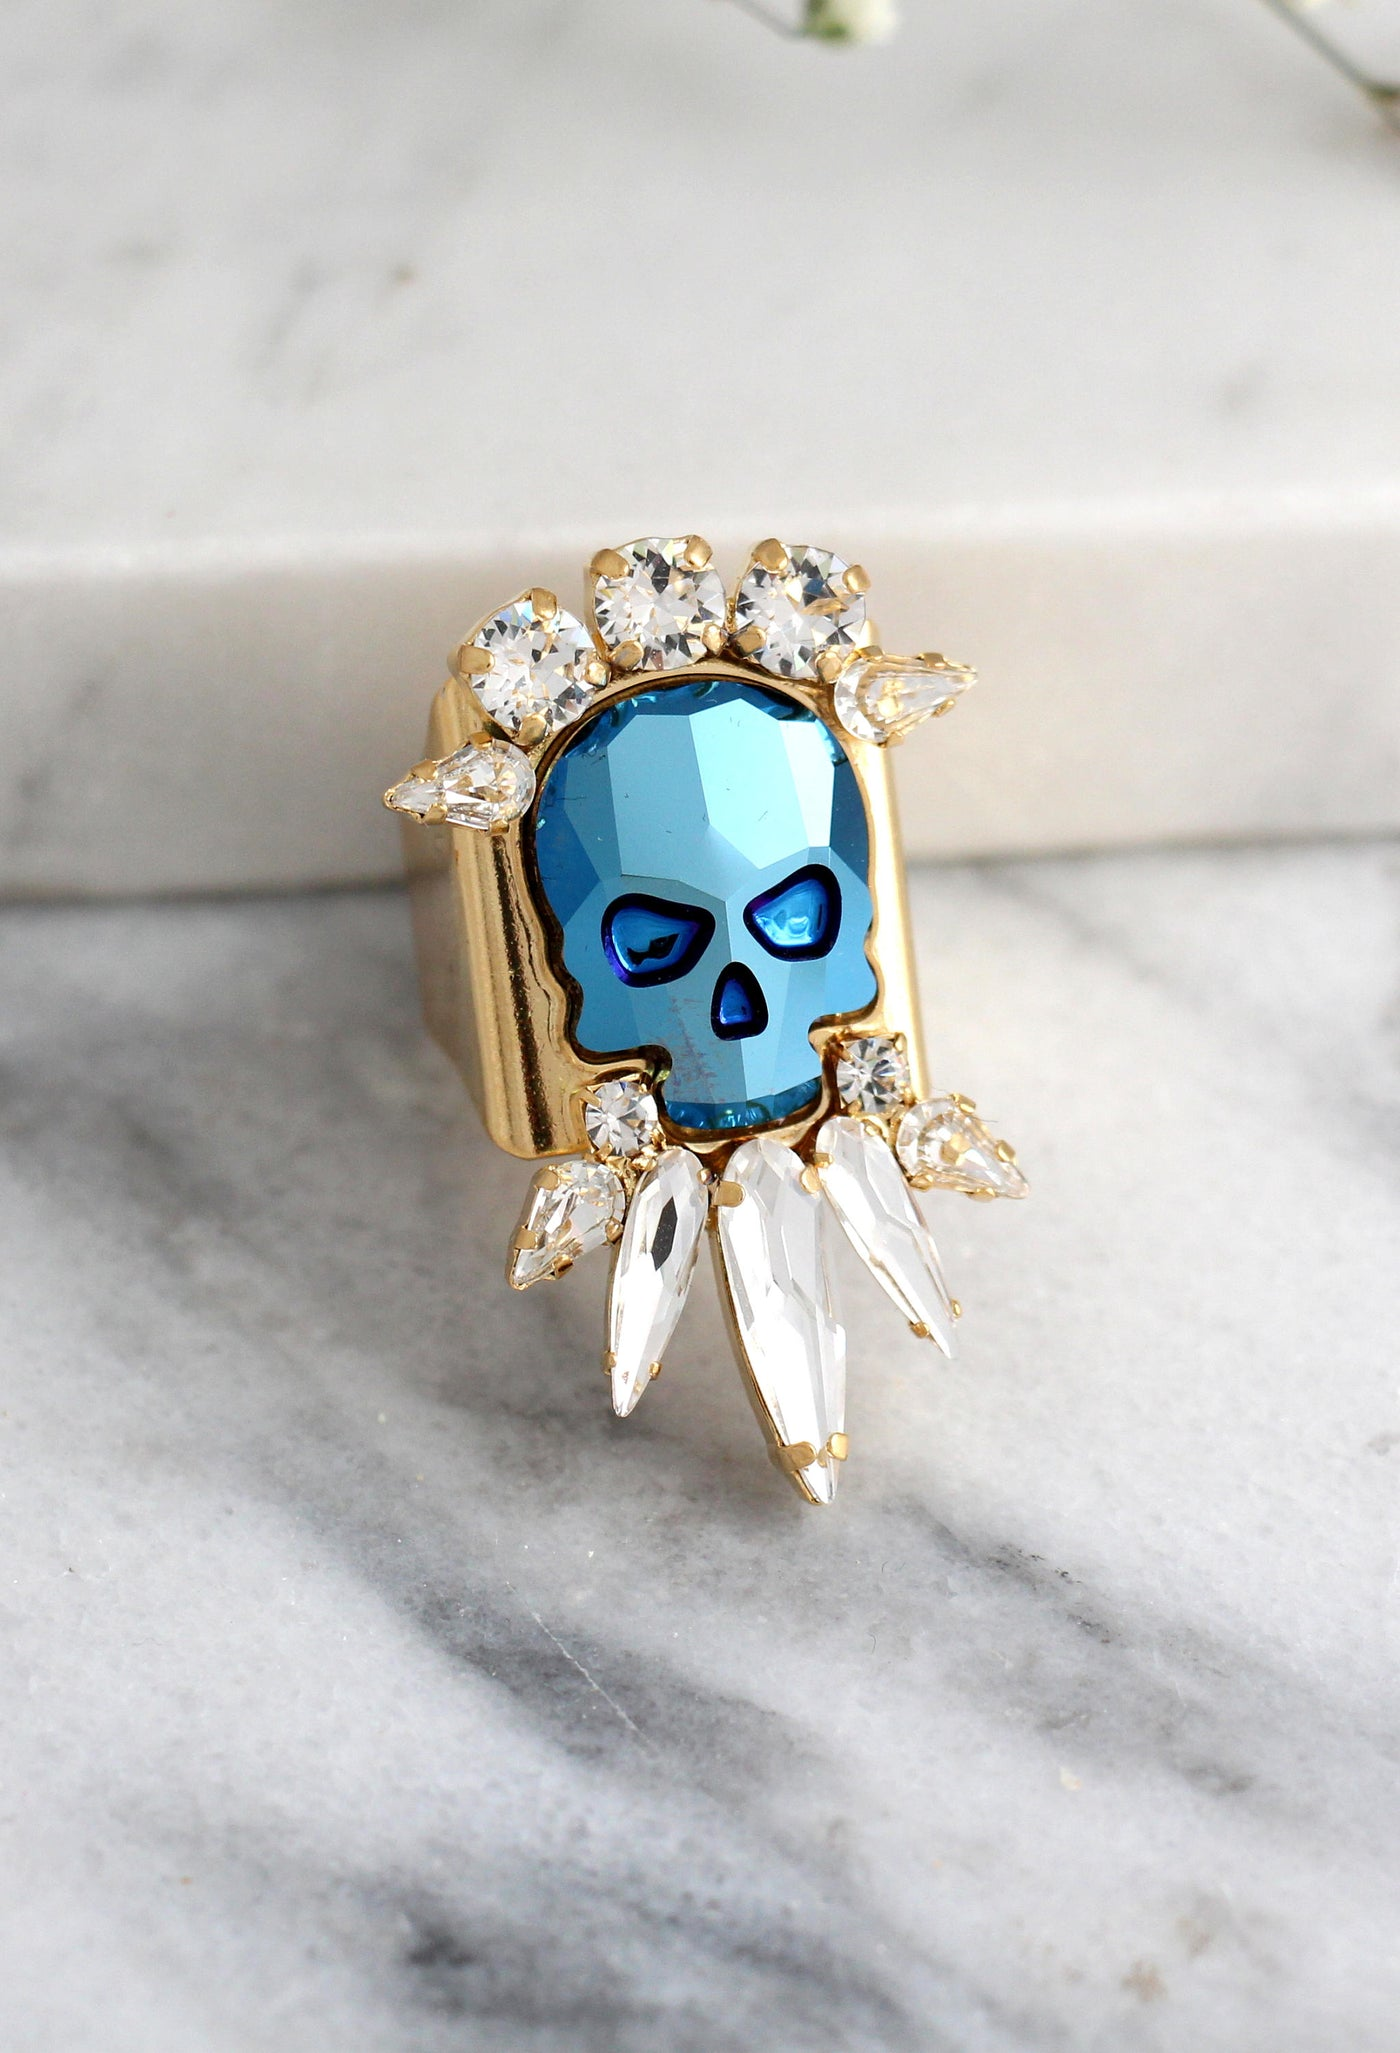 Jo's Metallic Blue Crystal Swarovski Gothic Big Sugar Skull Ring